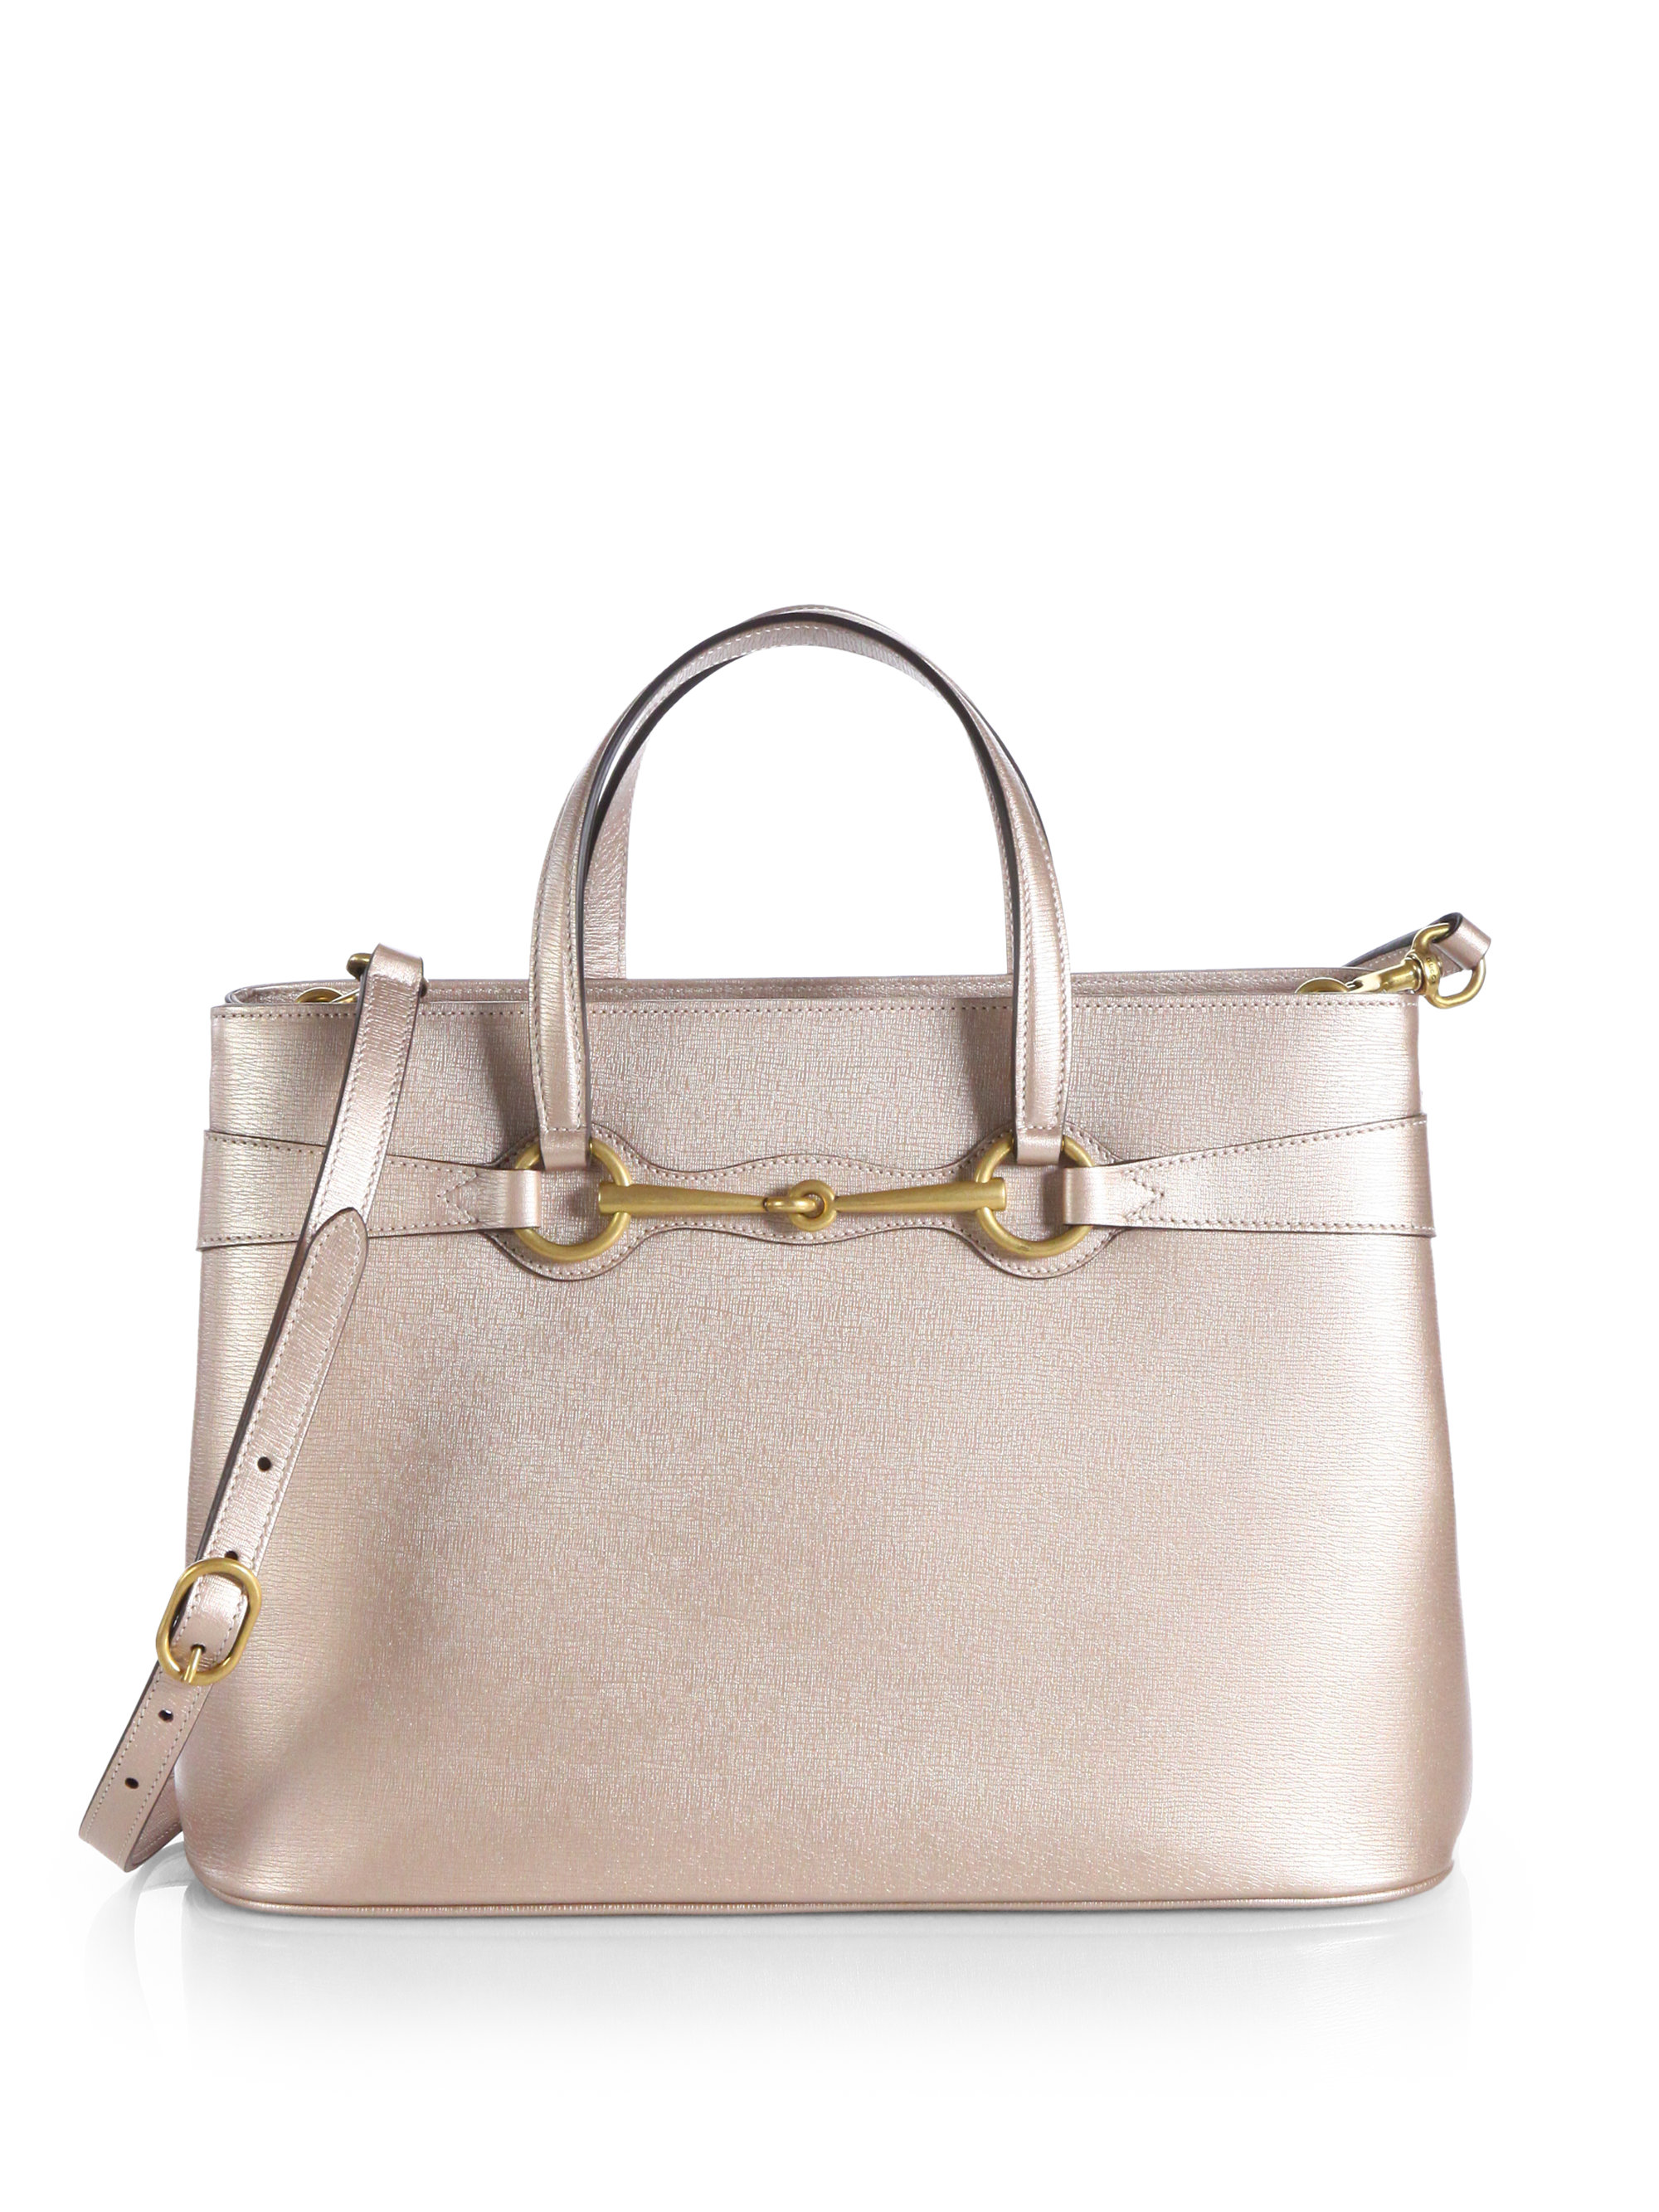 d6cea20dbc2 Lyst - Gucci Bright Bit Metallic Leather Tophandle Bag in Pink